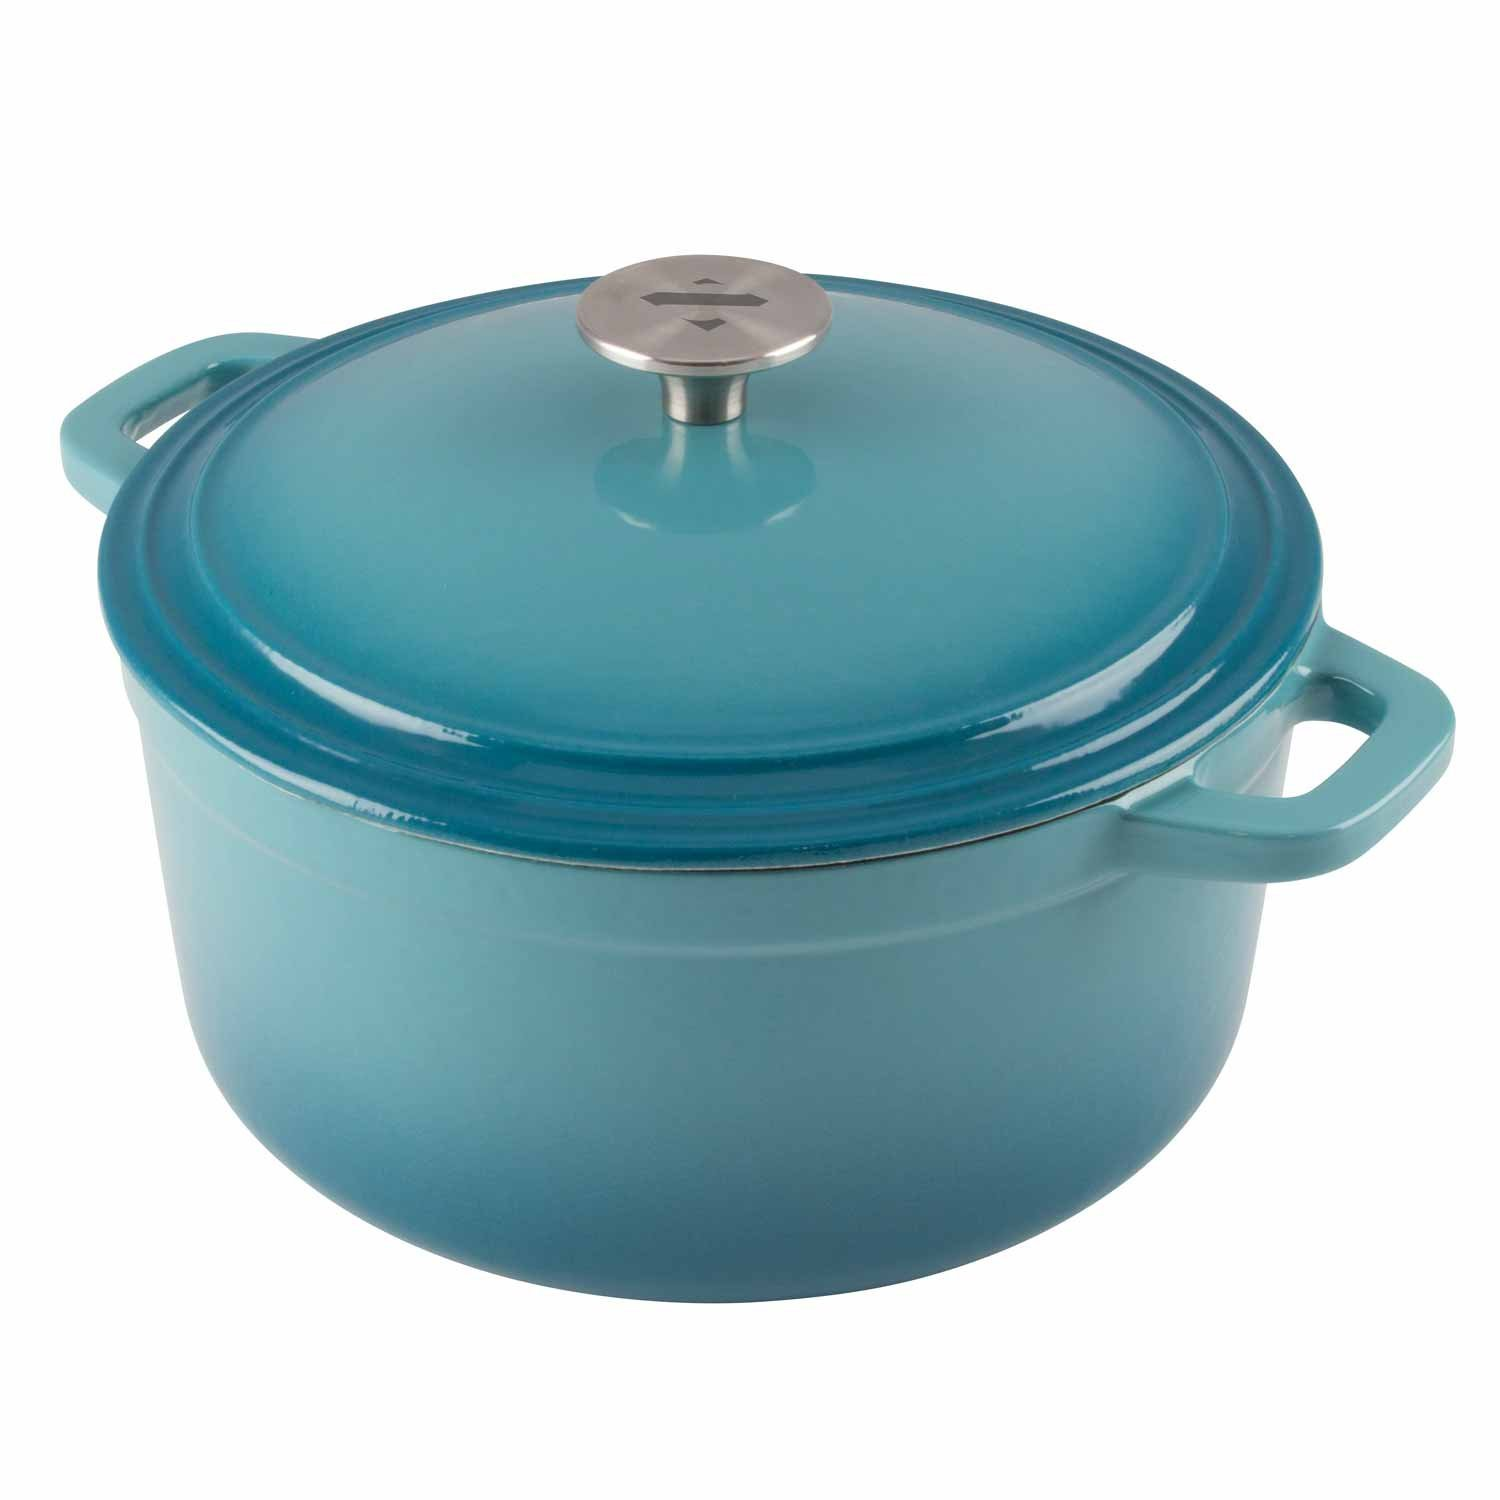 Zelancio Cookware 6 Quart Enameled Cast Iron Dutch Oven Cooking Dish with Self-Basting Lid, Teal